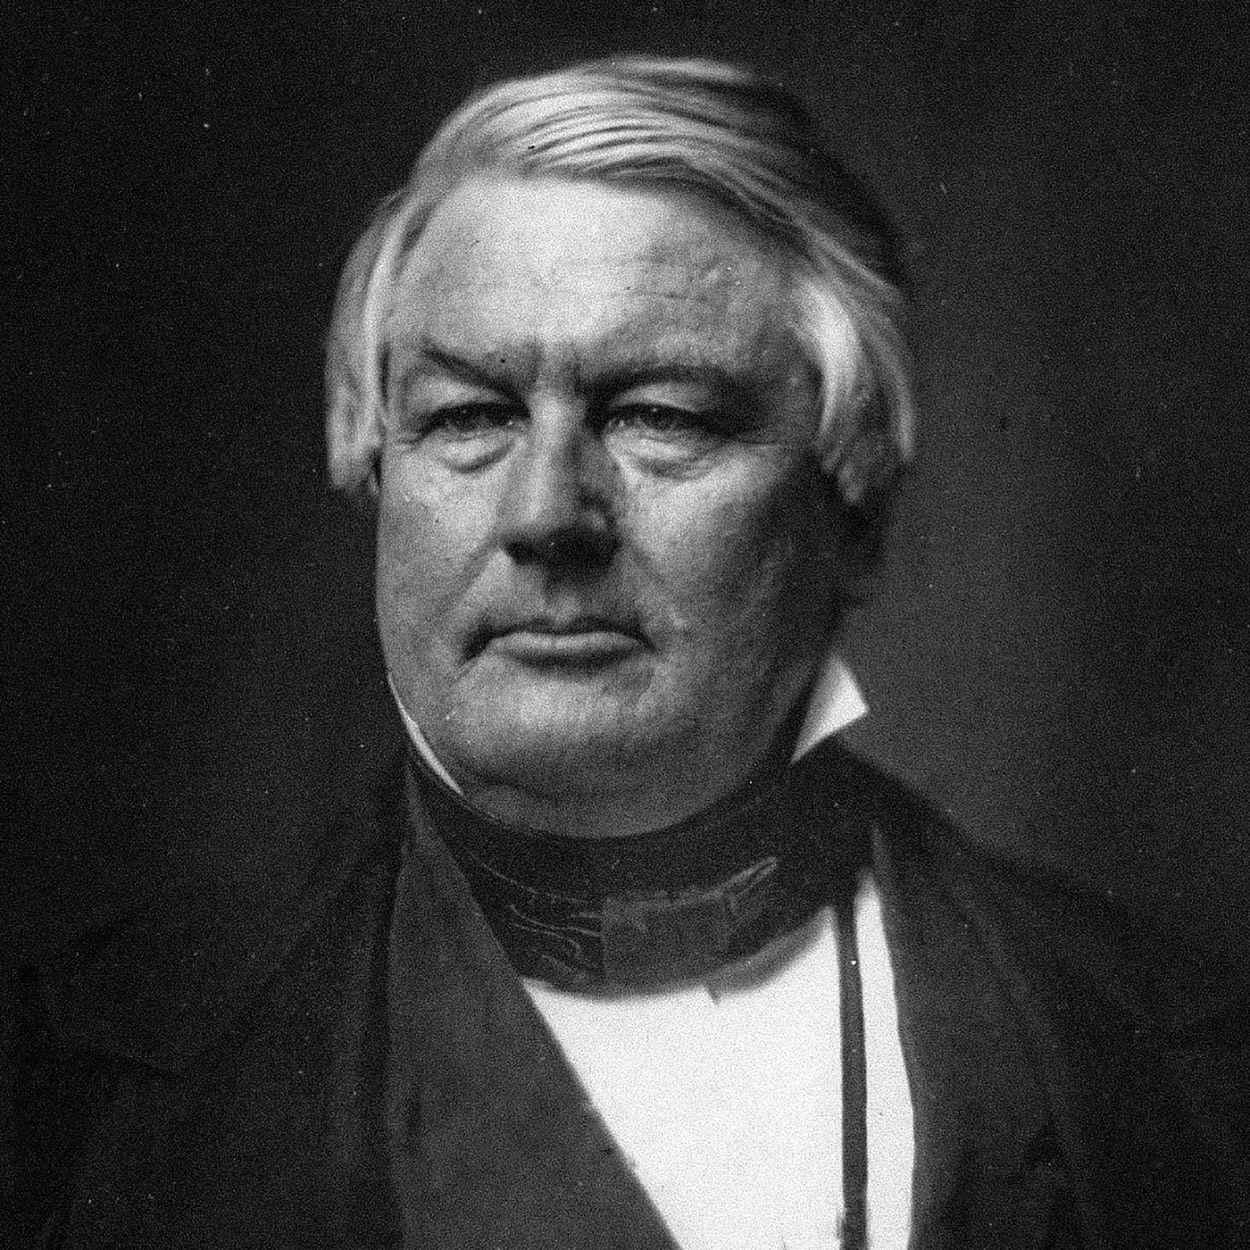 Portrait of Millard Fillmore, the 13th President of the United States